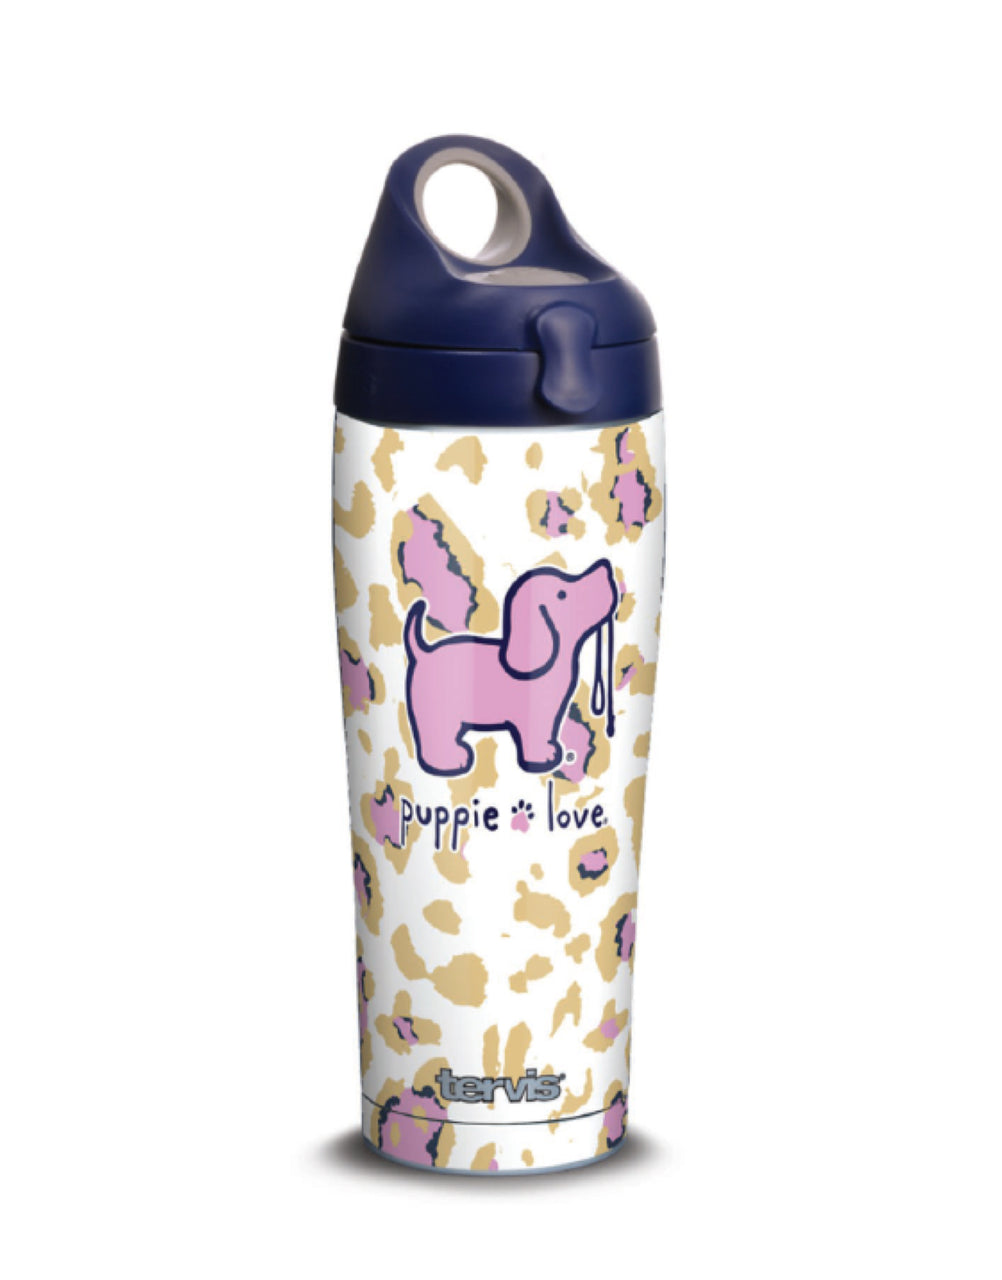 LEOPARD PUP 24oz STAINLESS STEEL WATER BOTTLE - Puppie Love